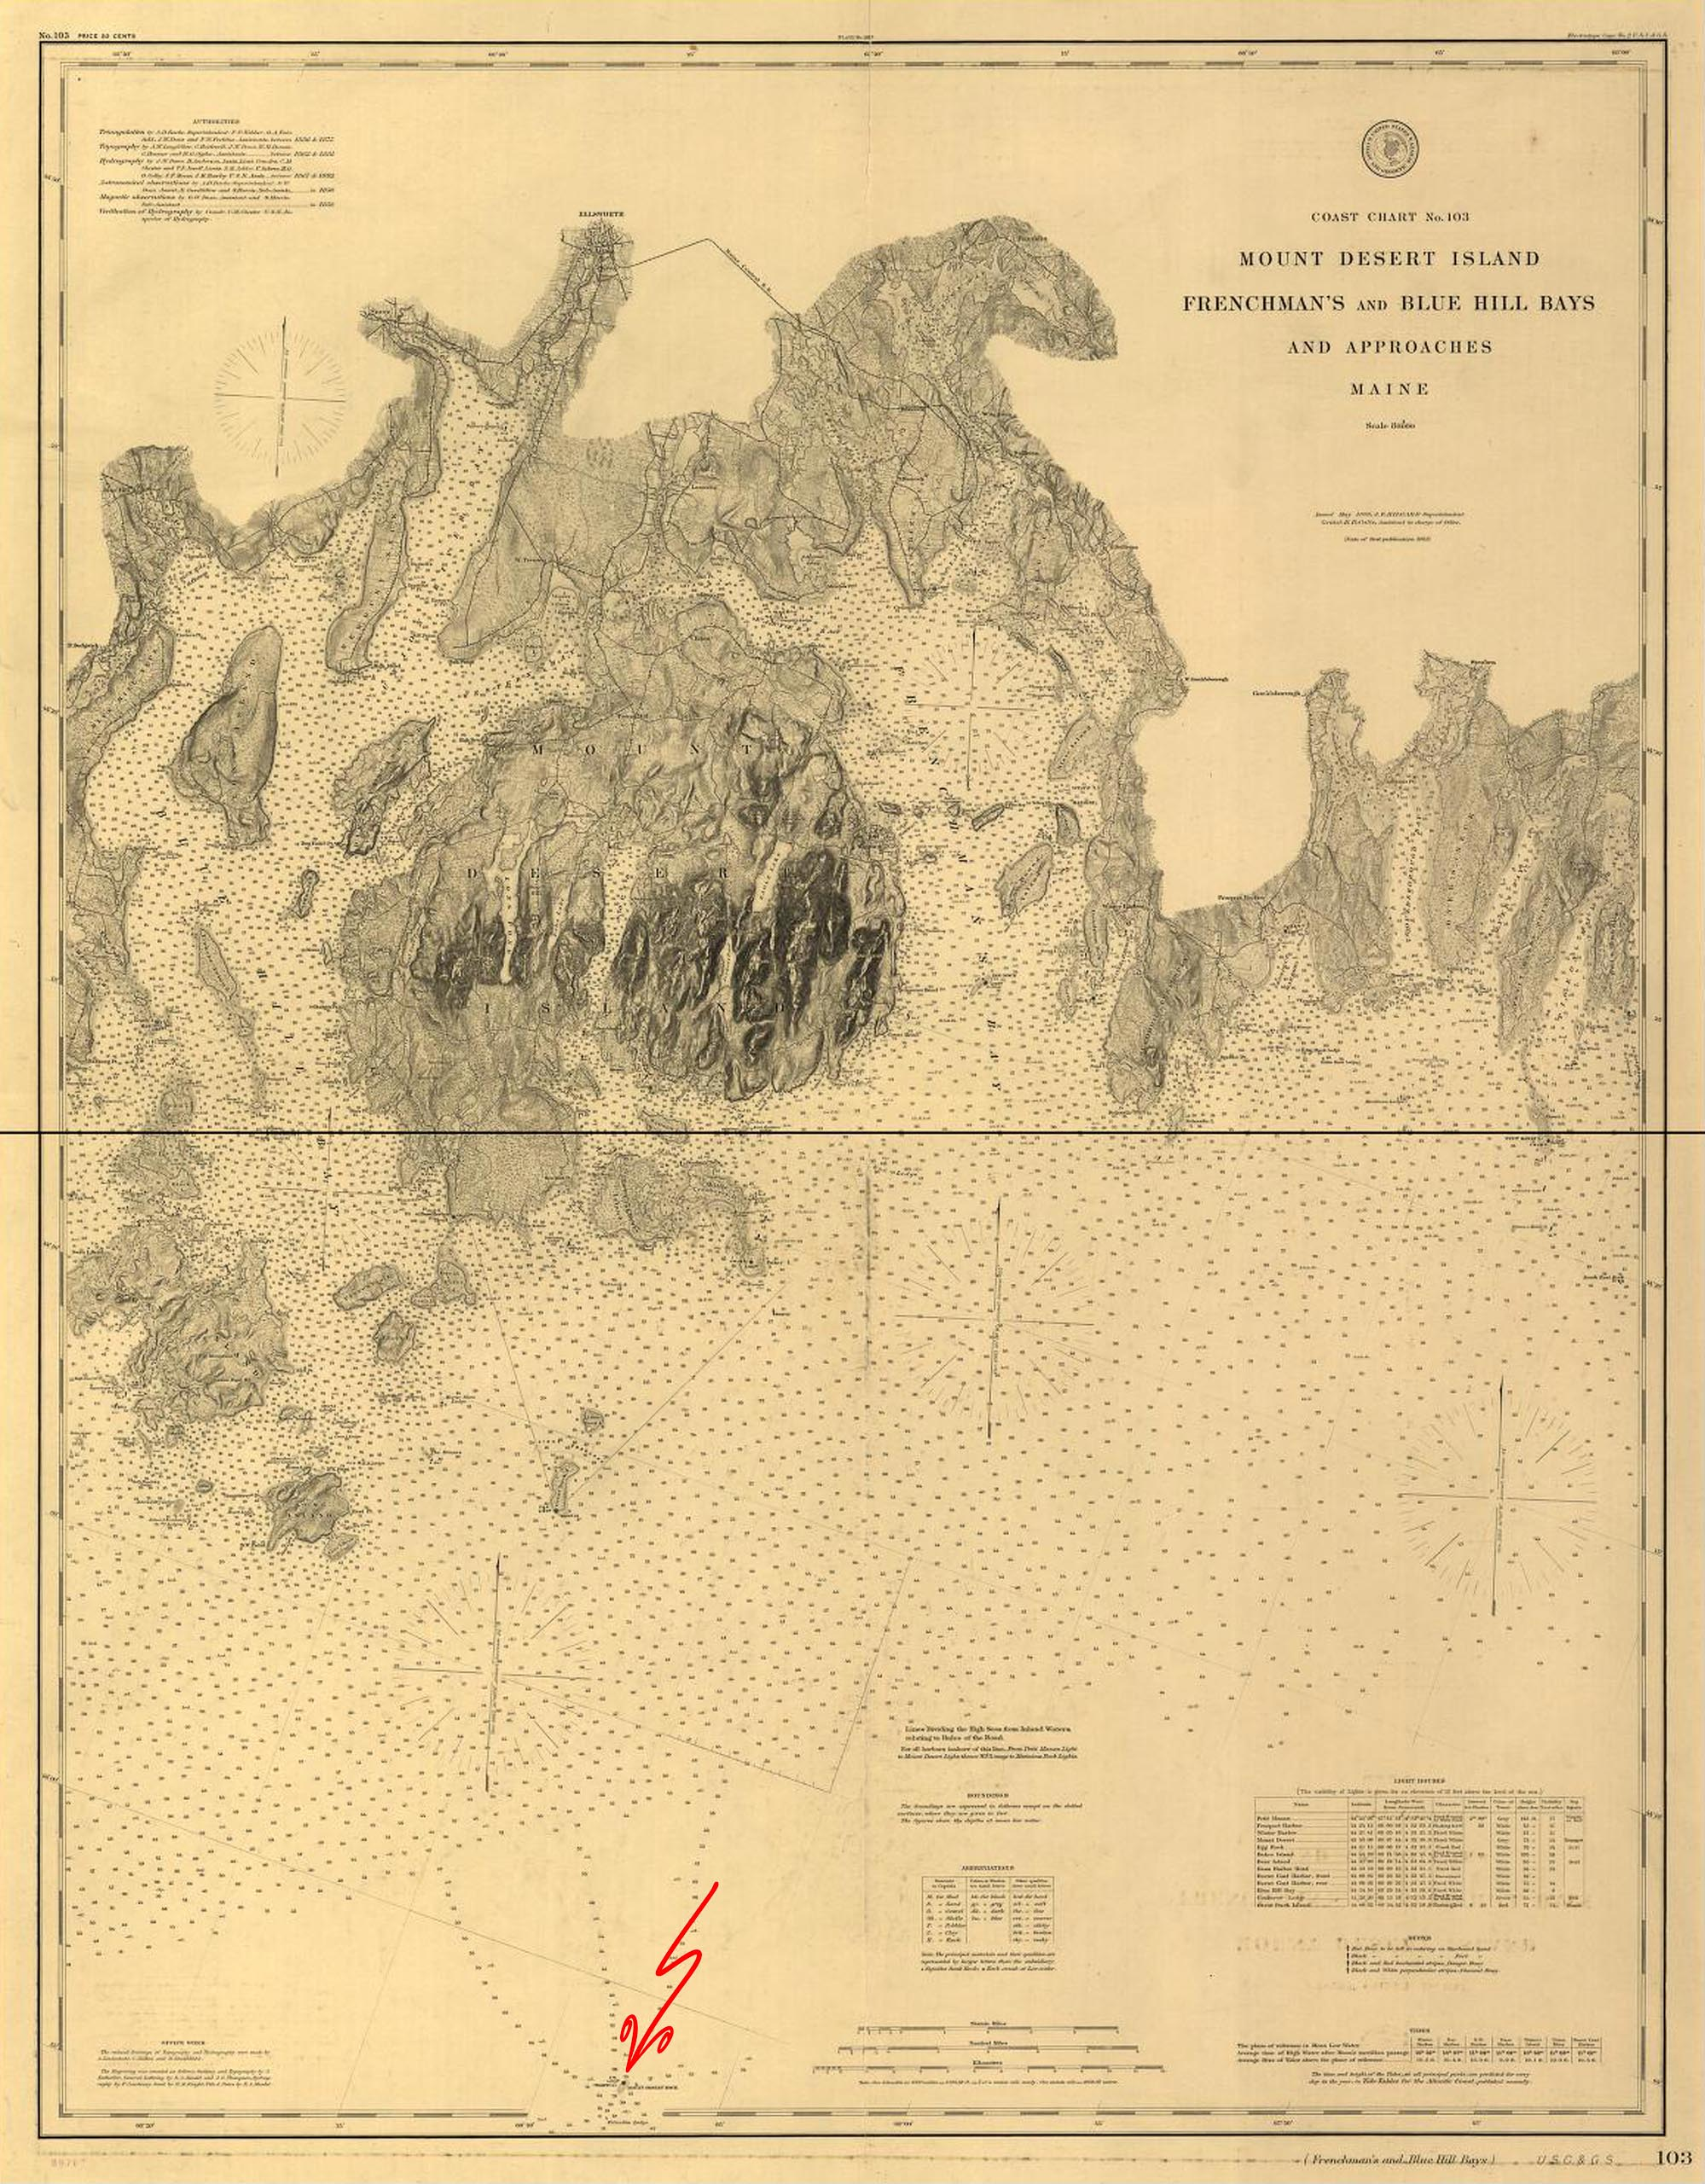 1875 Nautical Chart of Mount Desert Rock, and Frenchman's and Blue Hill Bays and Approaches